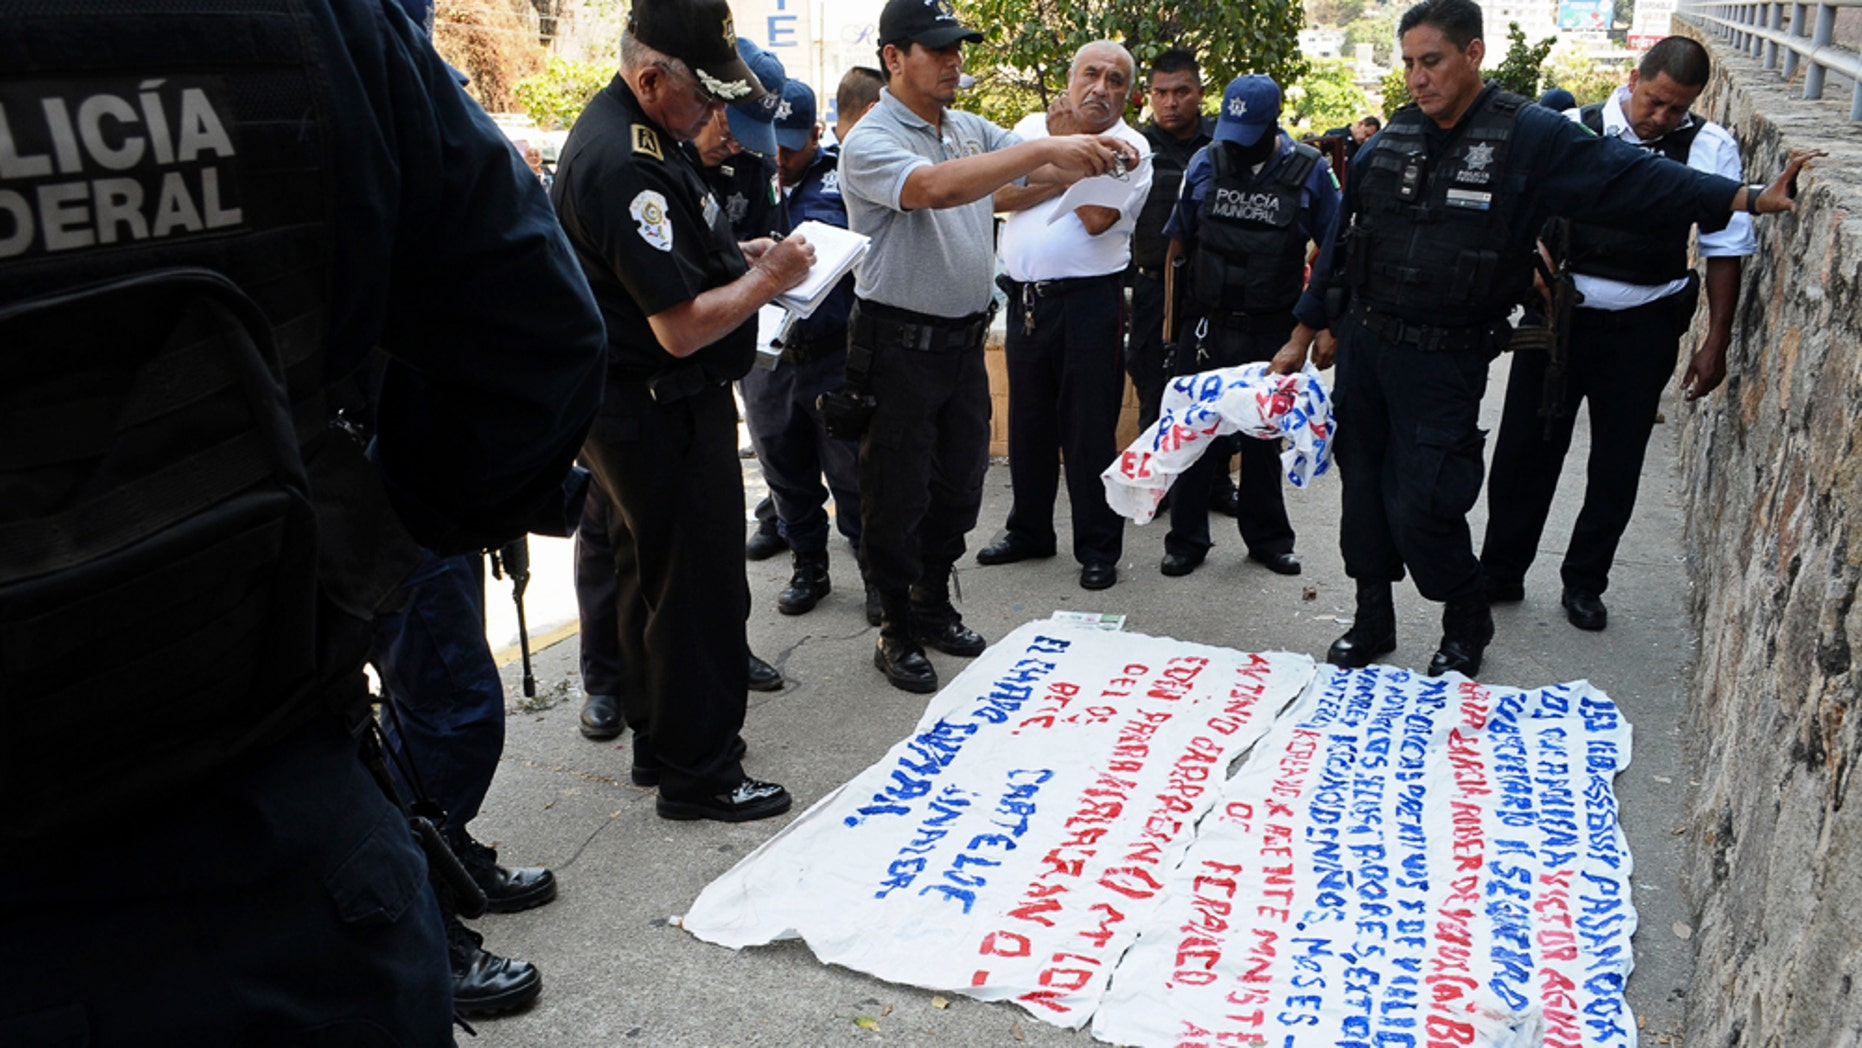 Police stand around a warning message painted on a banner left near the site where five dismembered bodies were found on the sidewalk next to a car in the Pacific resort city of Acapulco, Mexico Friday March 25, 2011. The bodies,  four of them police officers who were abducted hours earlier, according to police reports, were found just a few blocks from where Mexico's President Felipe Calderon and Guerrero State Governor Zeferino Torreblanca inaugurated the city's annual Tourism Fair for international tour operators and industry officials. Calderon has declared 2011 the Year of Tourism as Acapulco is facing record levels of violence from warring cartels. (AP Photo/Bernandino Hernandez)